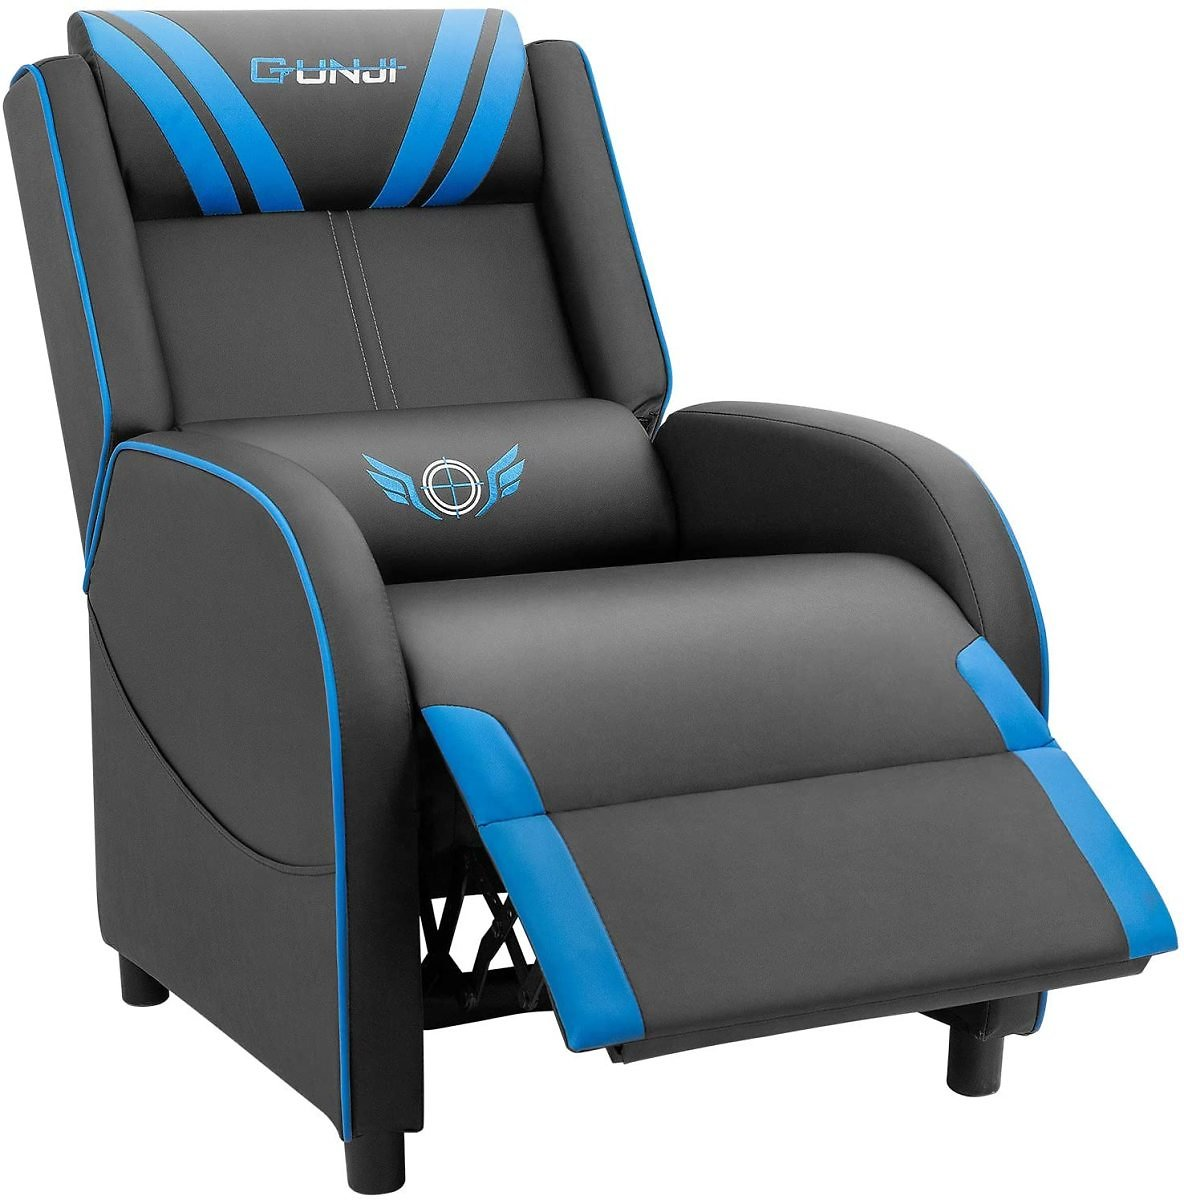 Gaming / Home Theater Recliner Chair